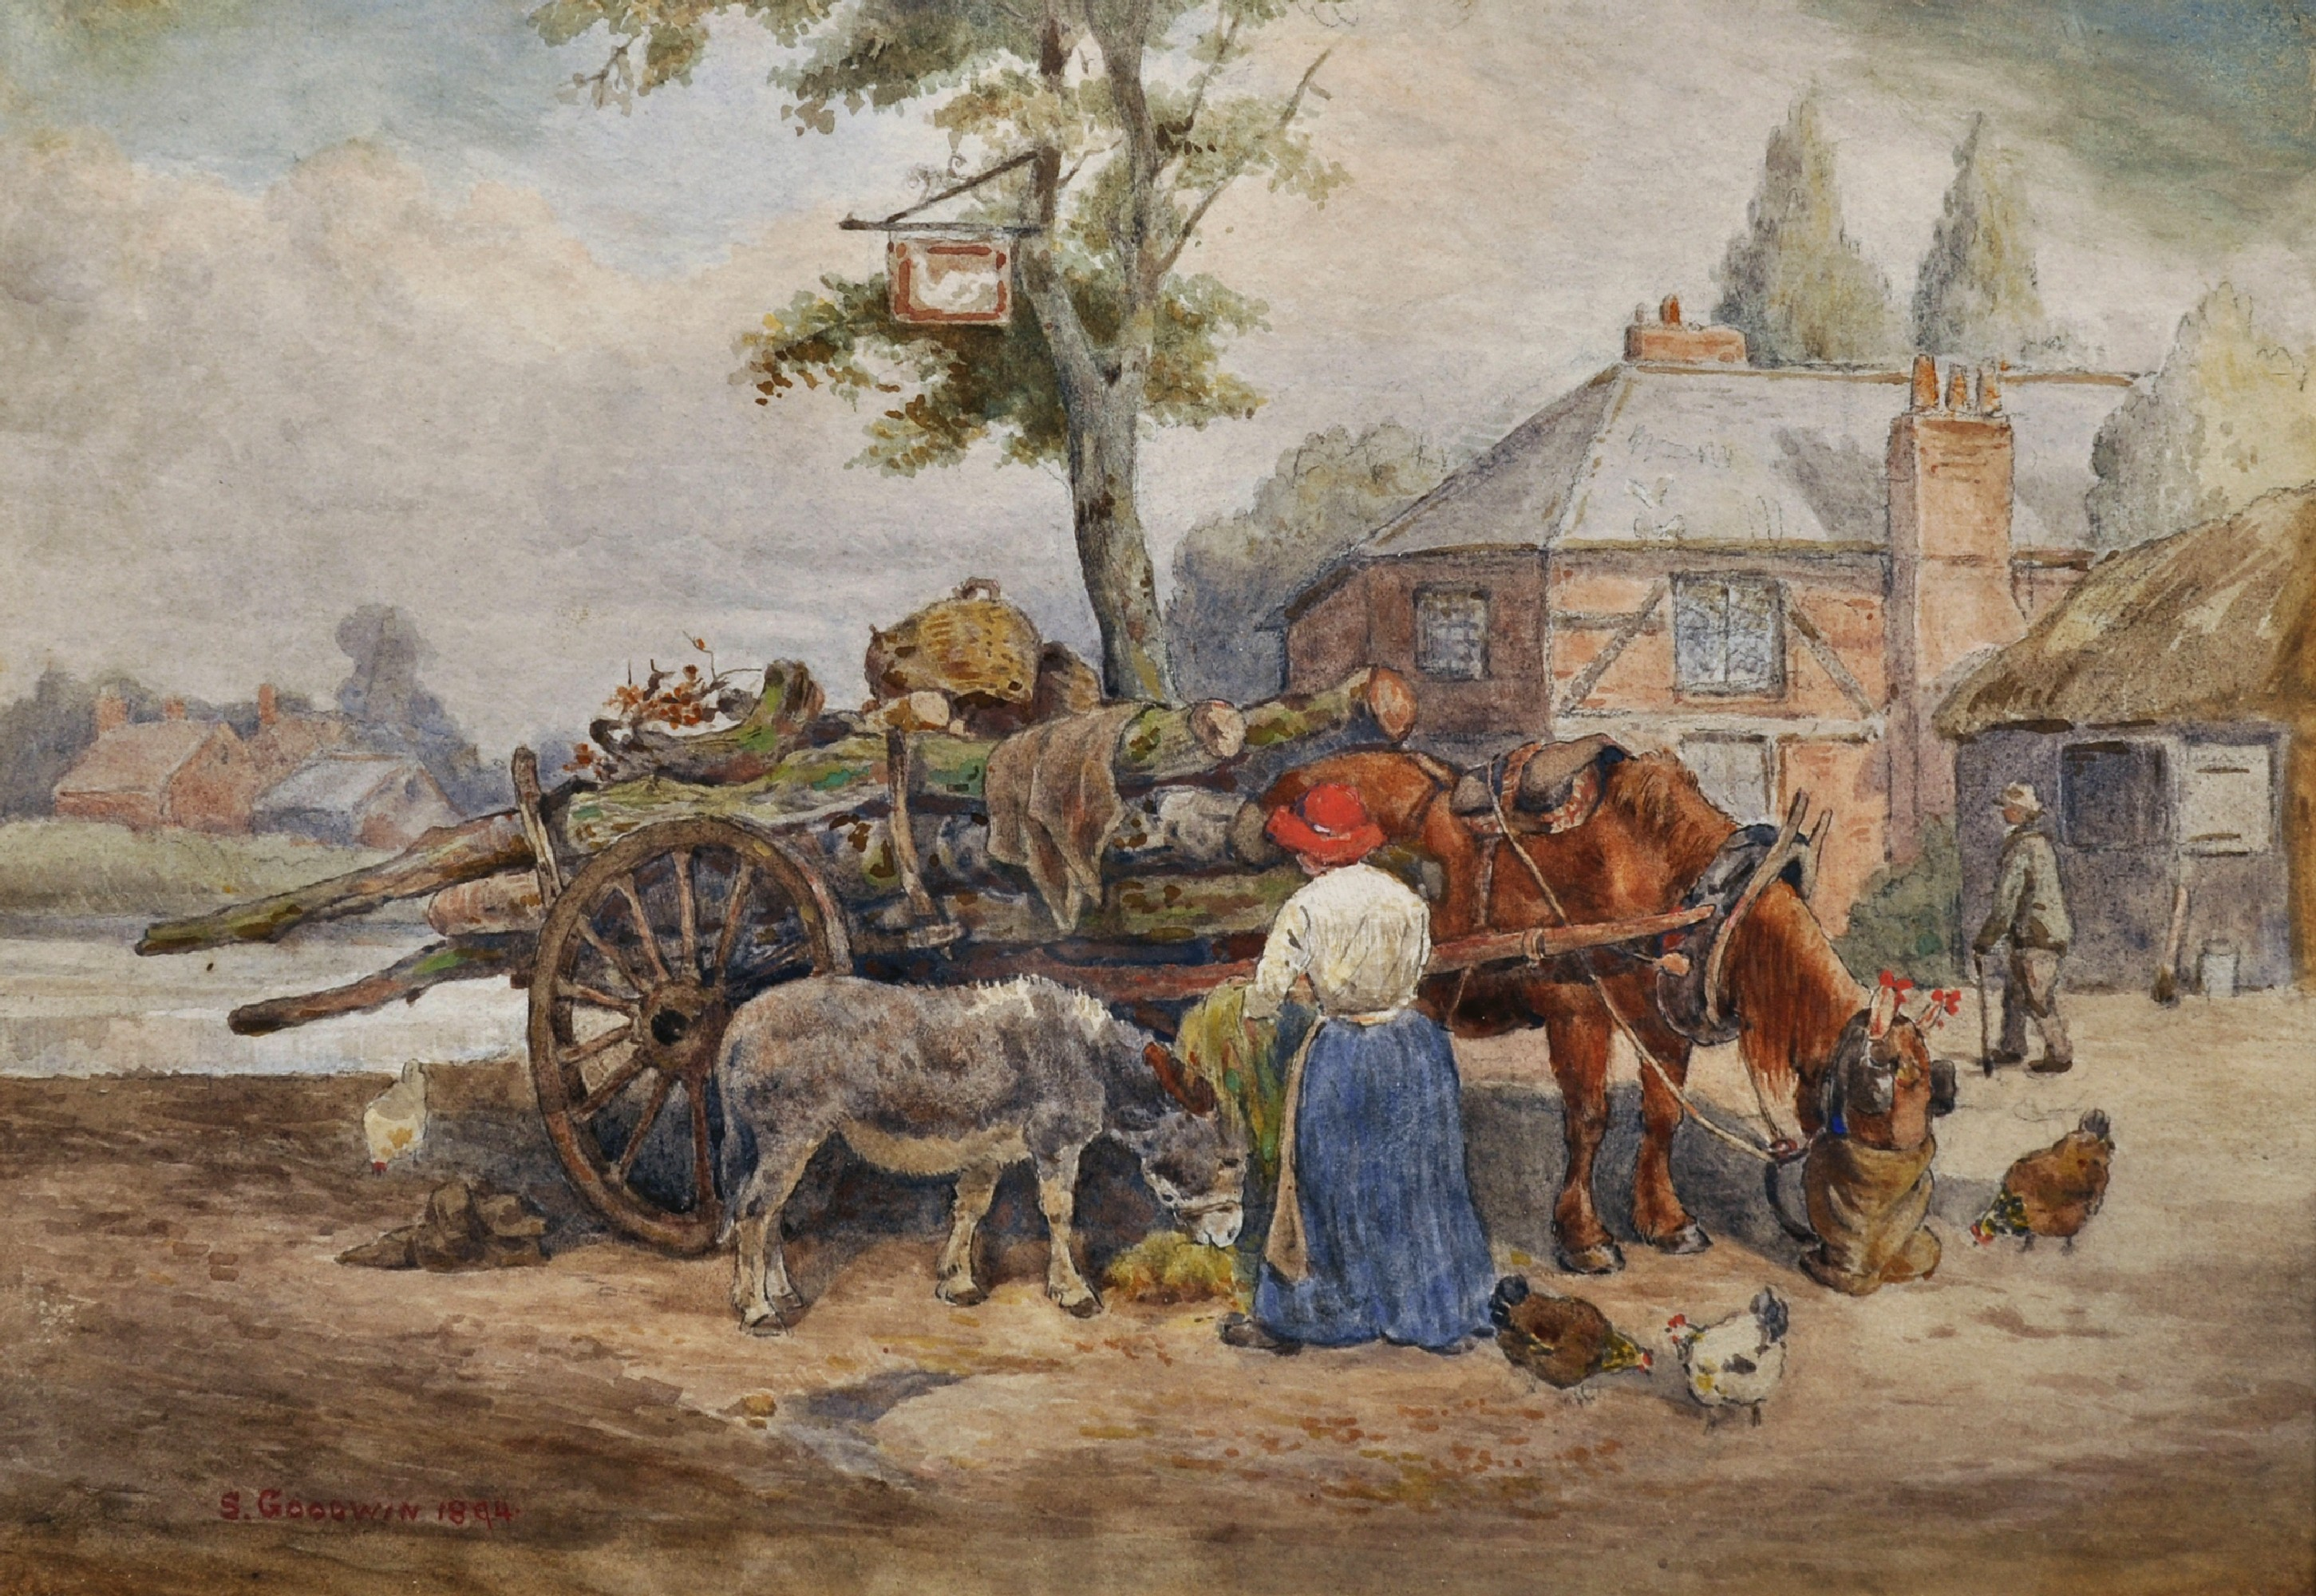 Lot 166 - Sidney Paul Goodwin (1867-1944) British. A Logging Team by the Swan Inn, Watercolour, Signed, 10""